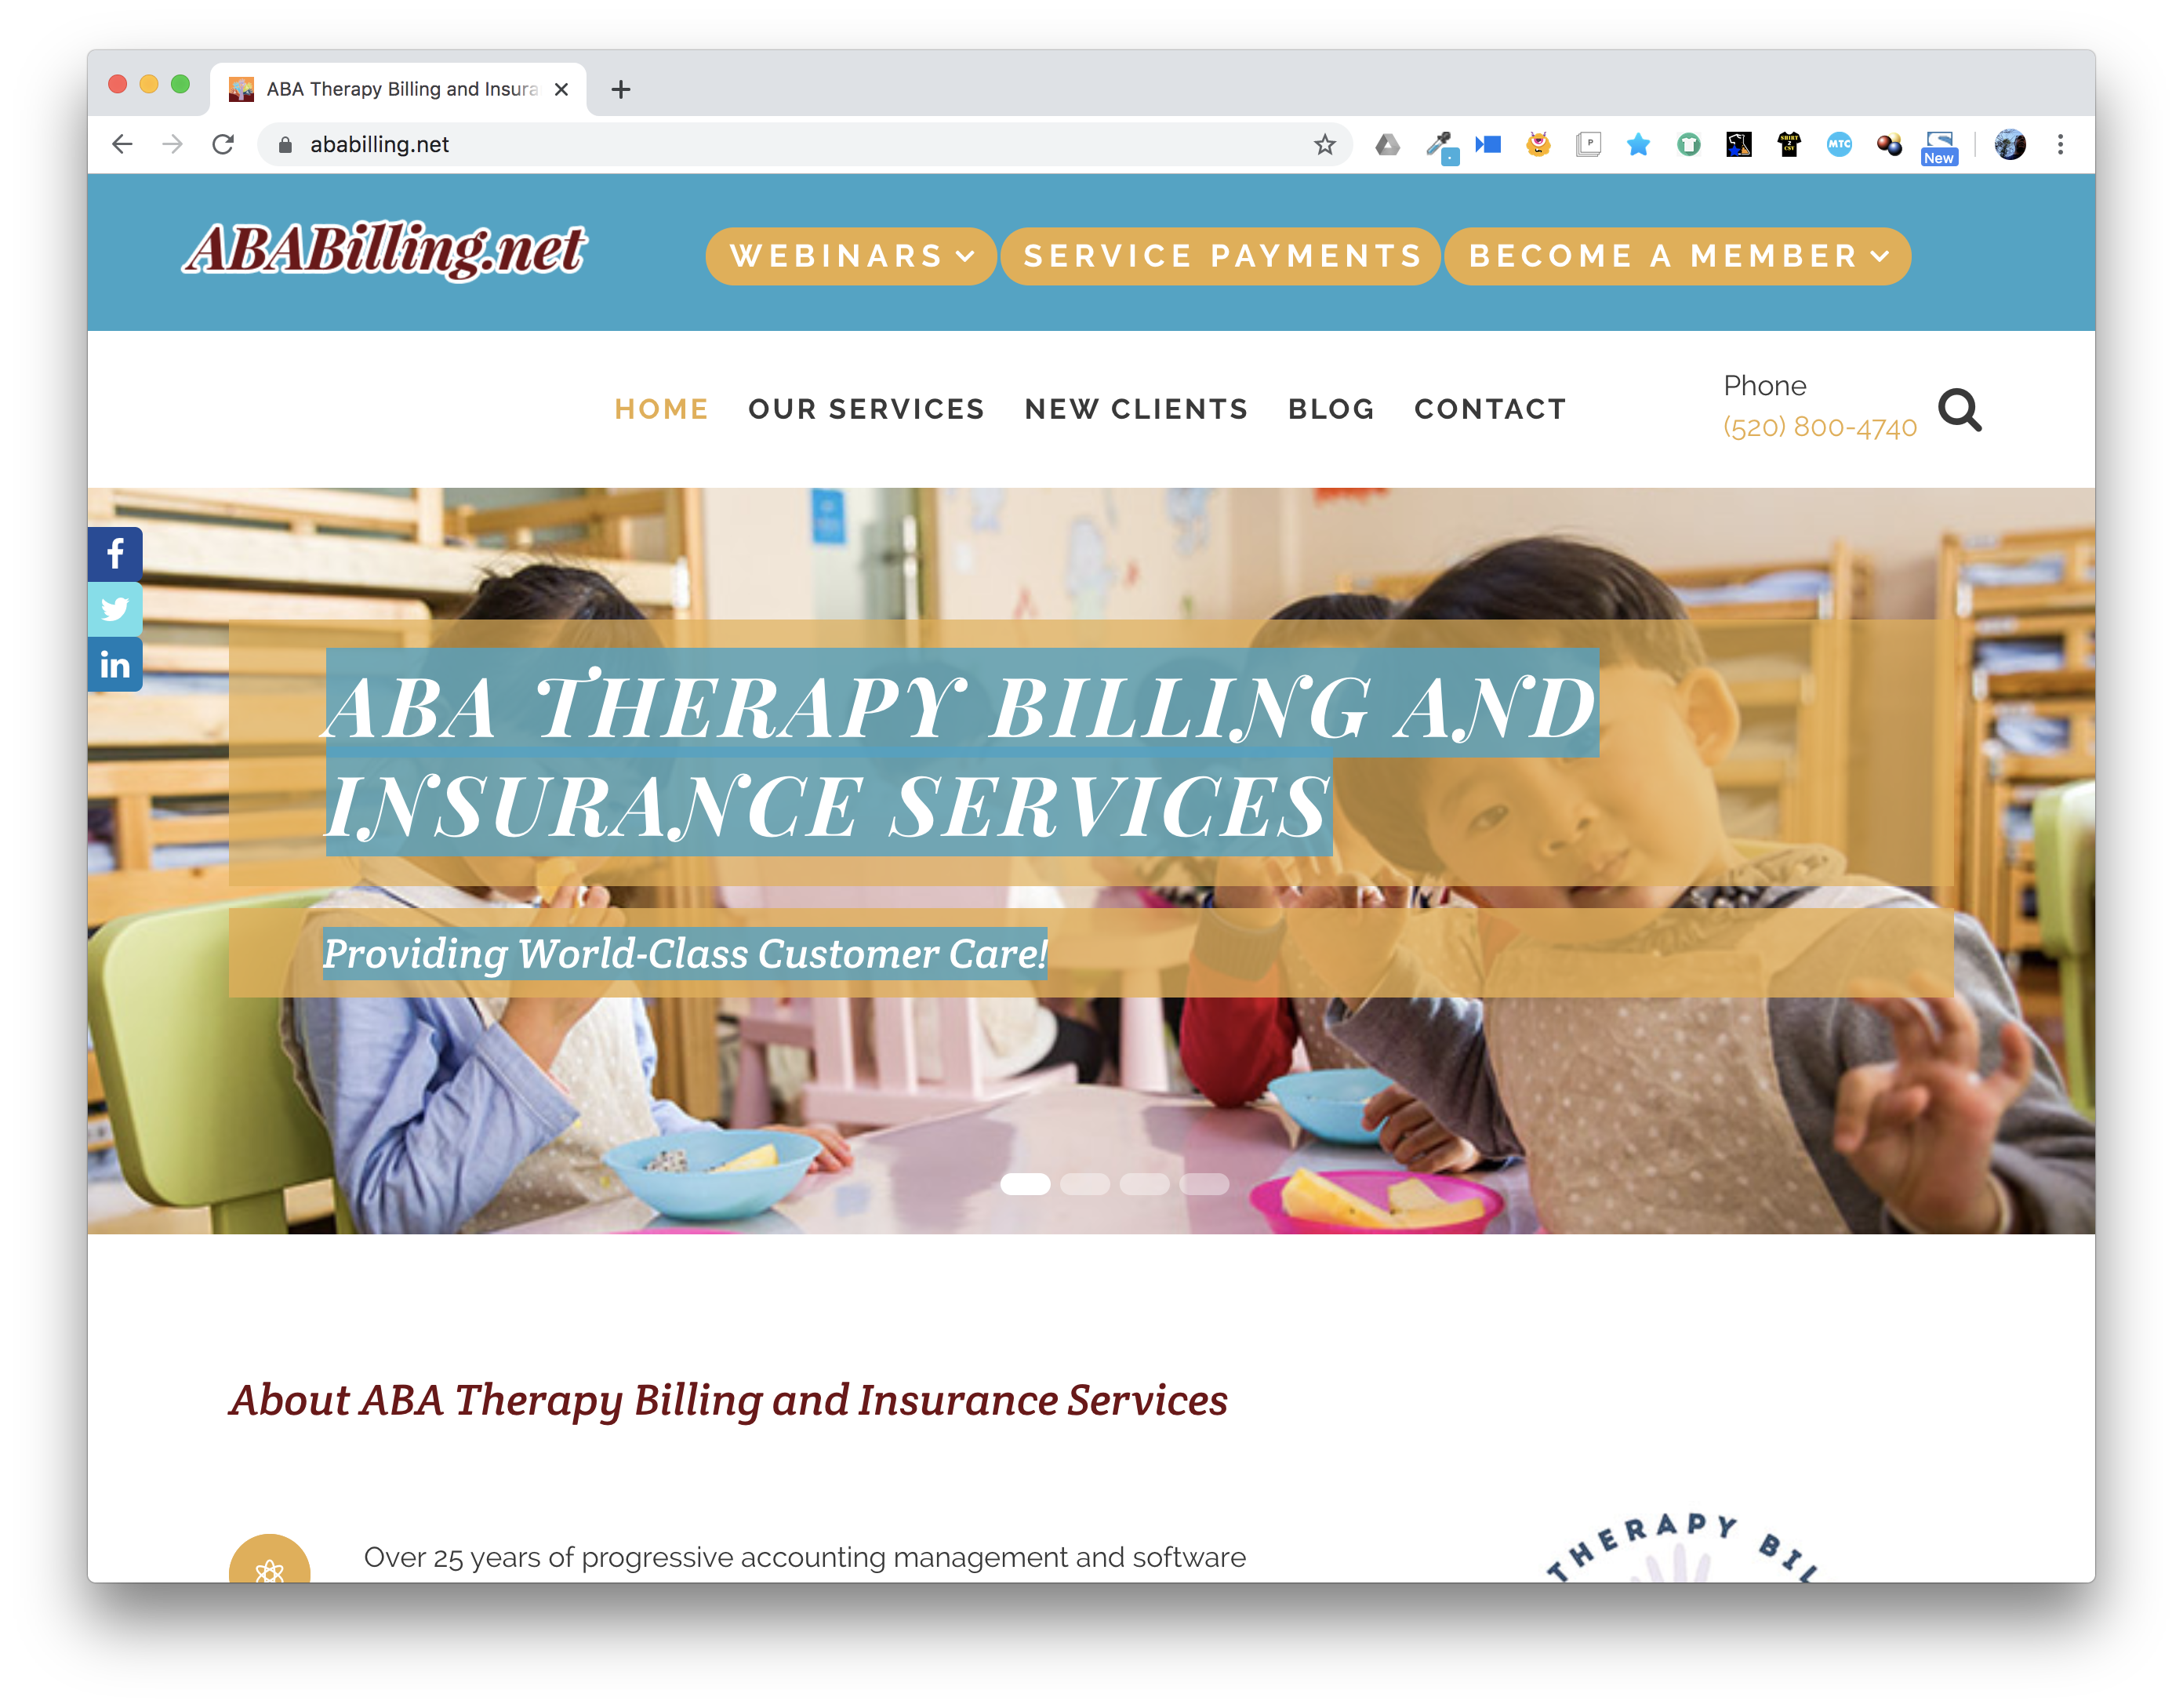 Web Design: ABA Therapy Billing and Insurance Services